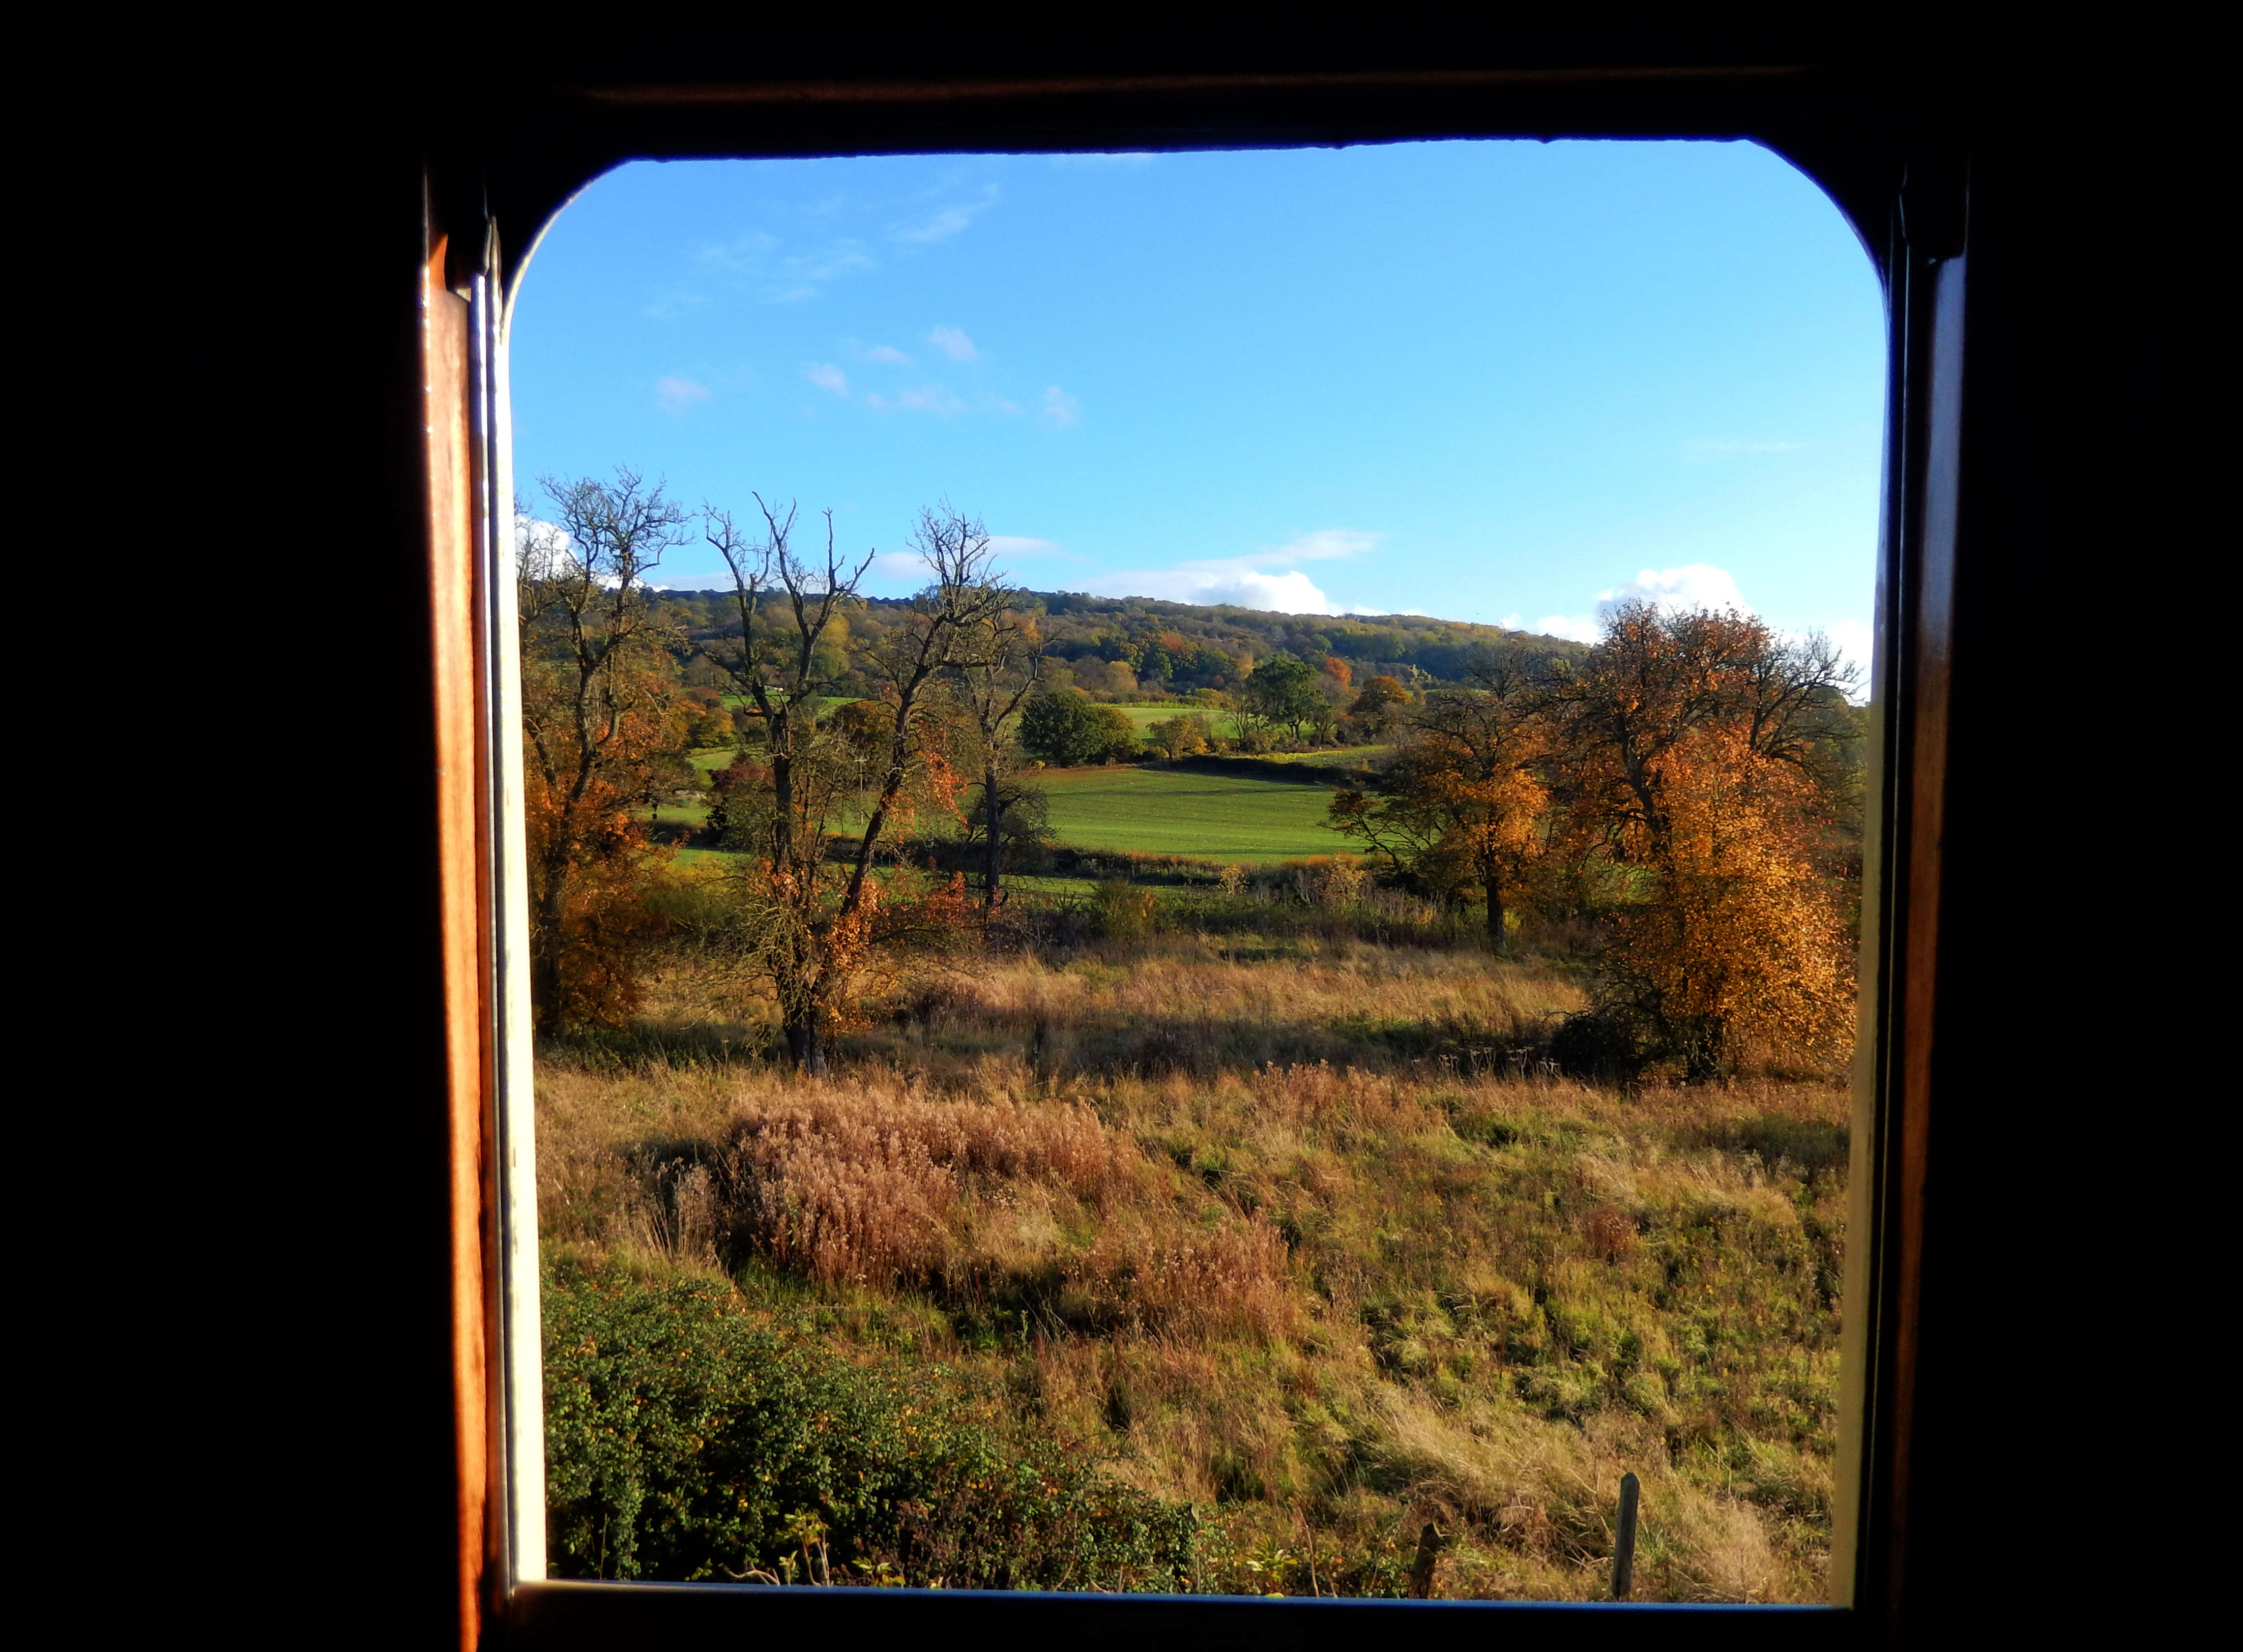 Gloucestershire Warwickshire Steam Railway - Through the Window - This Steam Train Stops at Hogwarts...Right!?